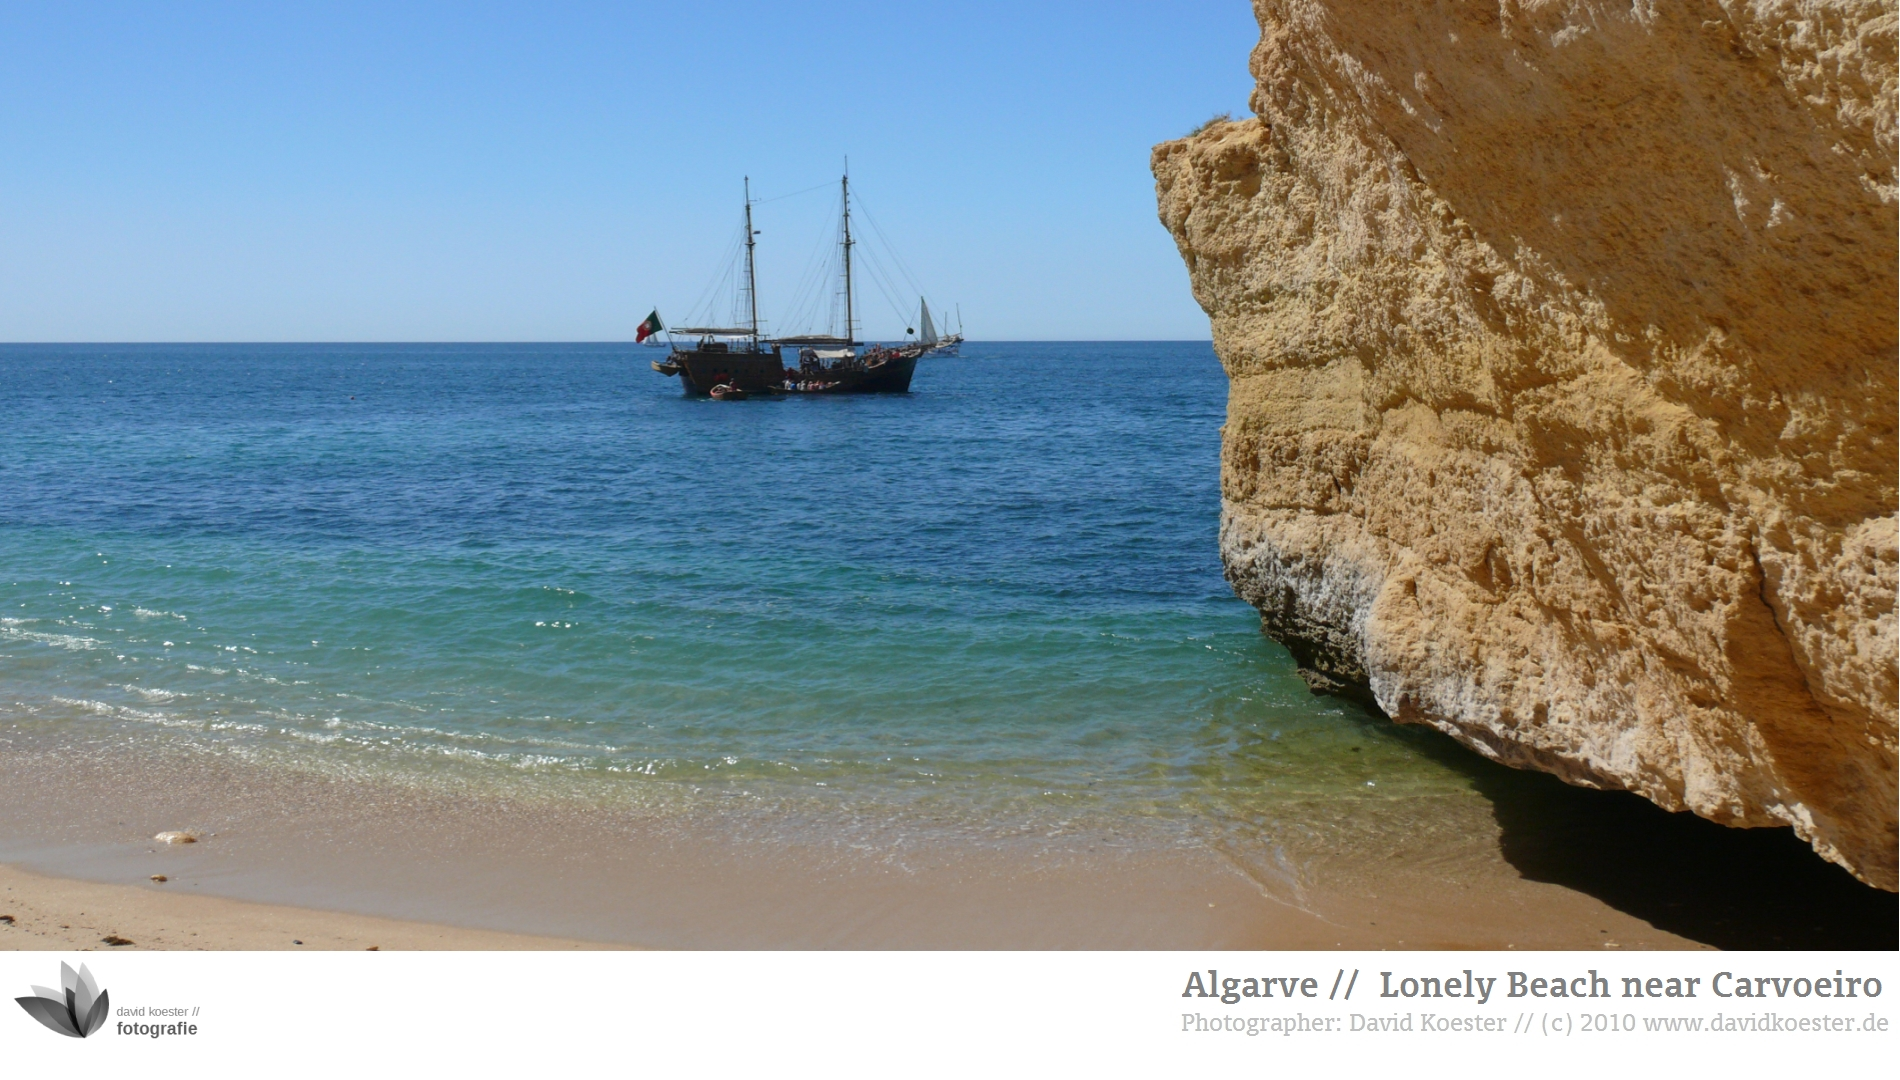 wallpaper algarve 1 traumstrand in der n he von carvoeiro 1900x1080